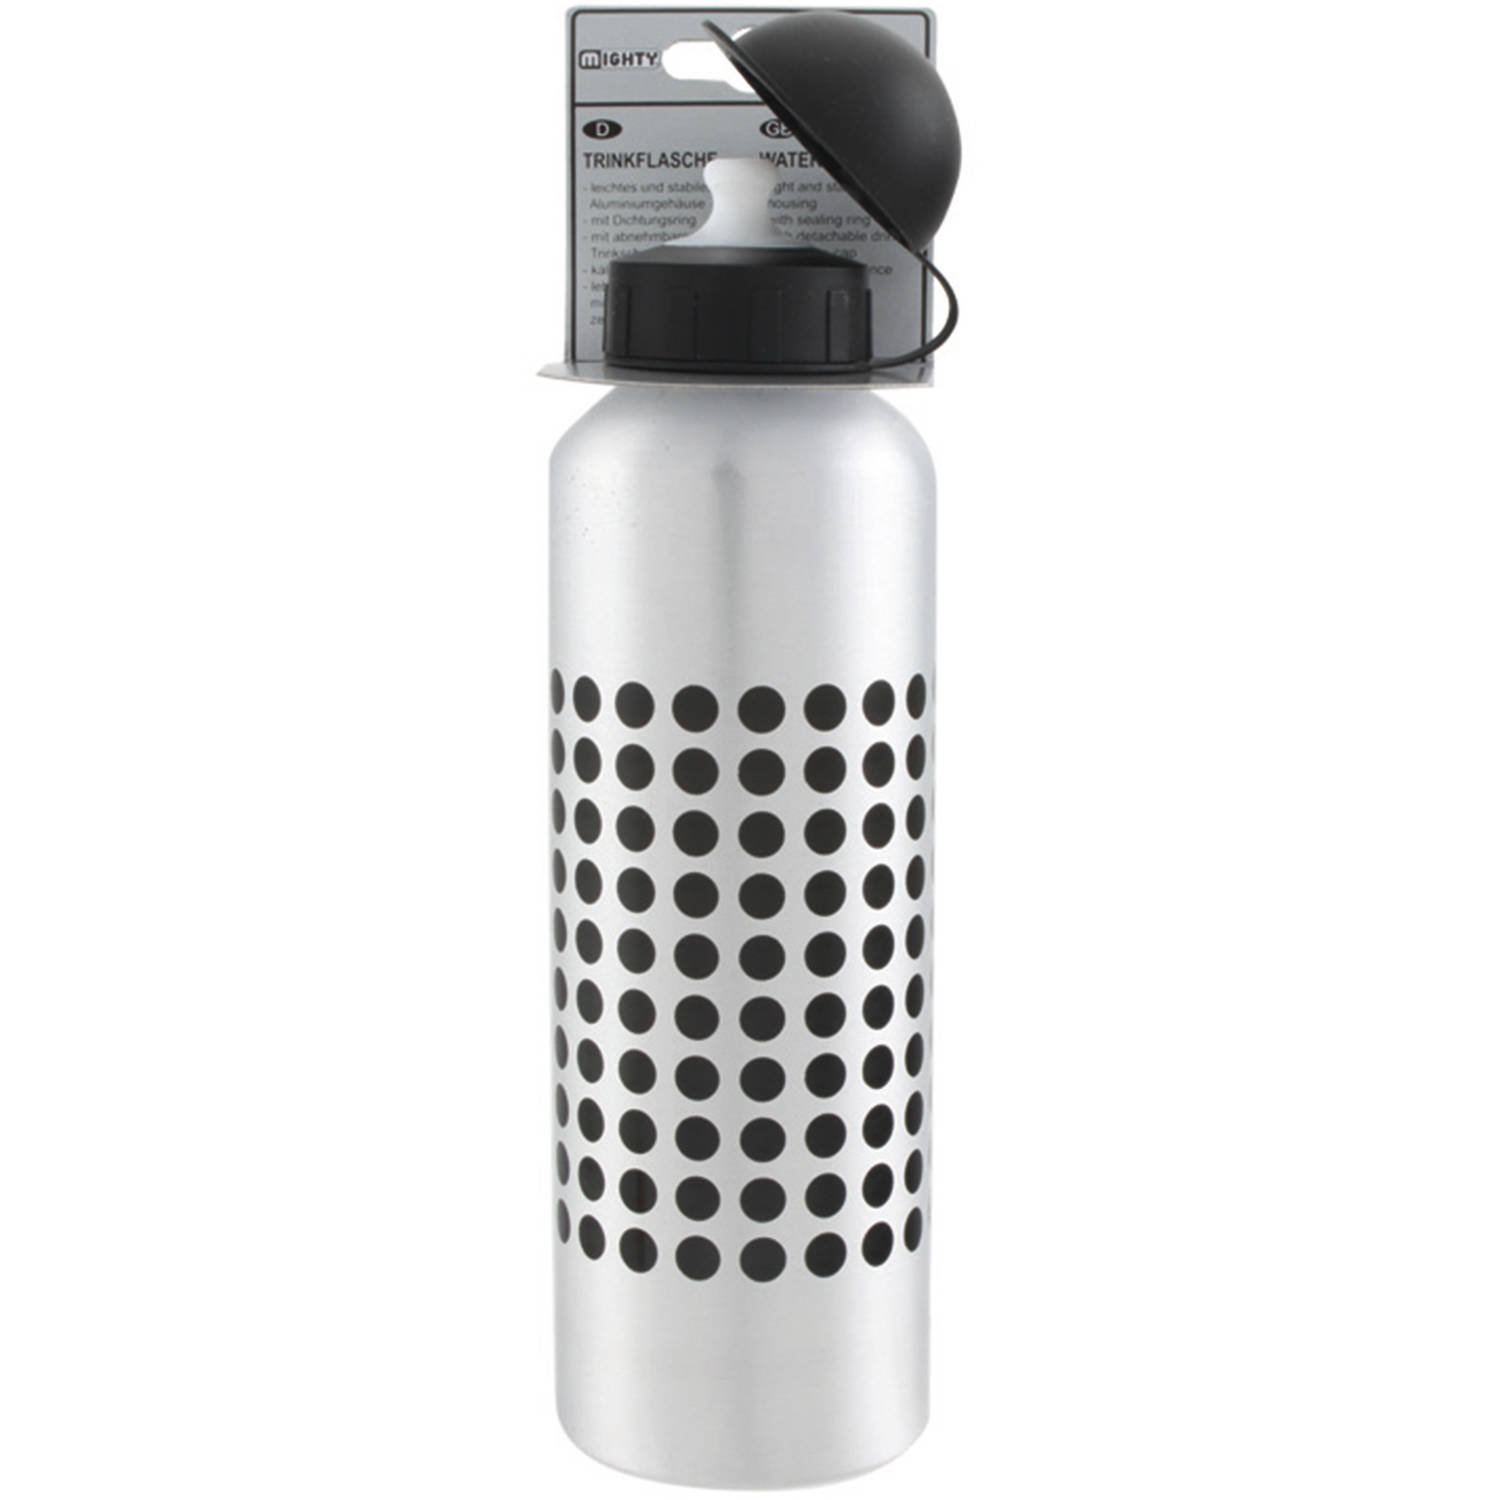 Ventura 750 ml. Alloy Water Bottle, Silver